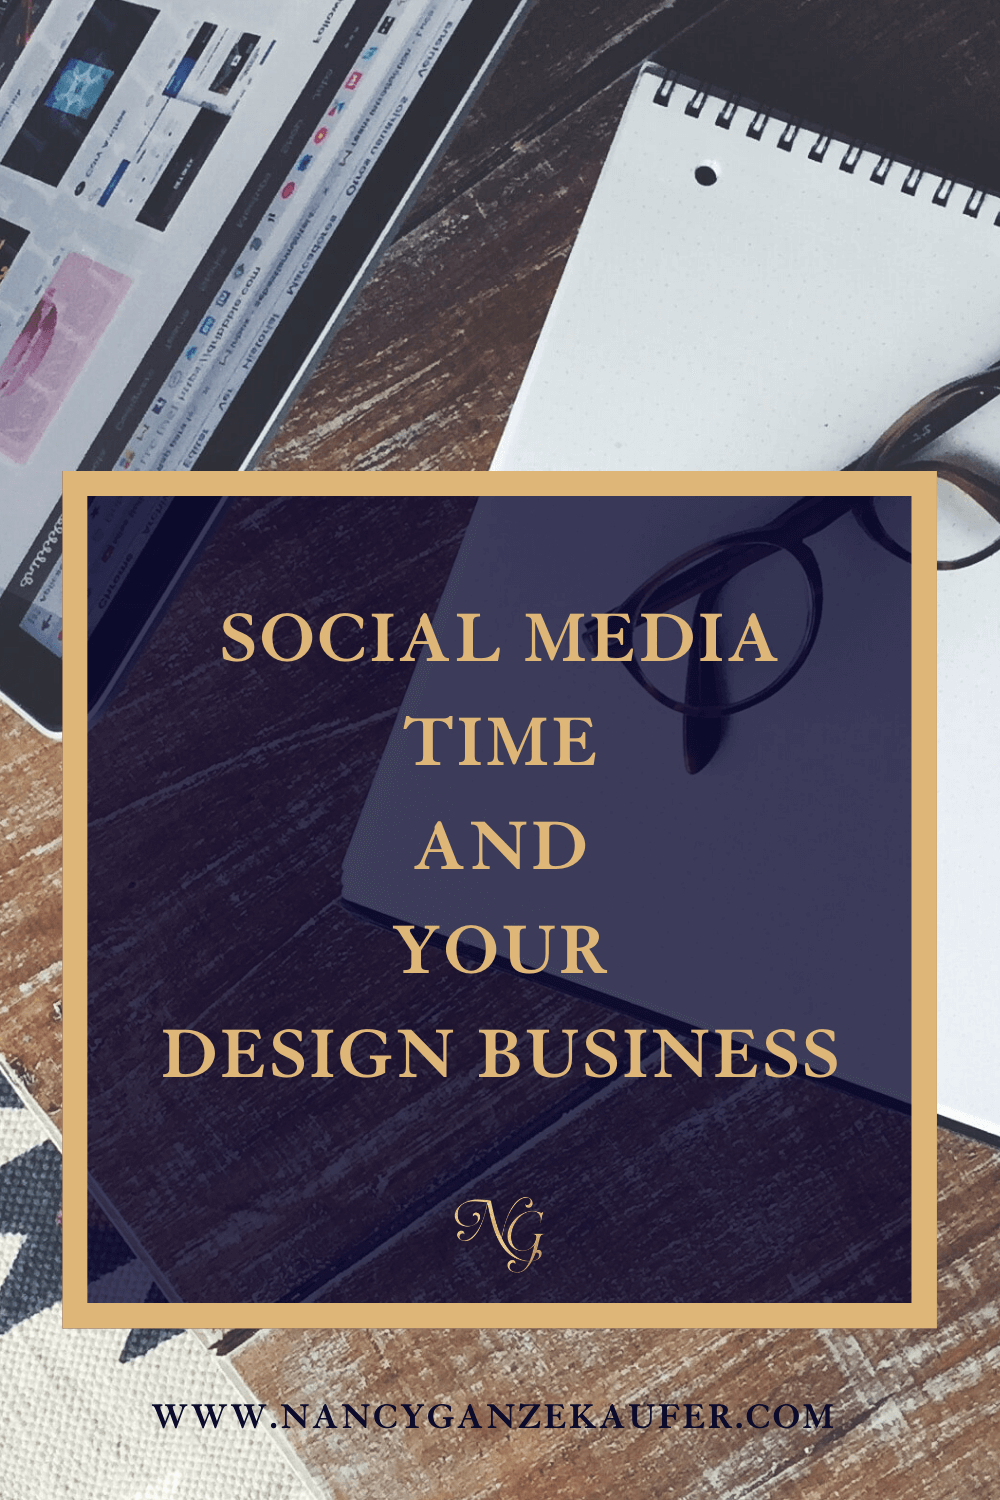 Strategize and maximize your social media time for your interior design business.